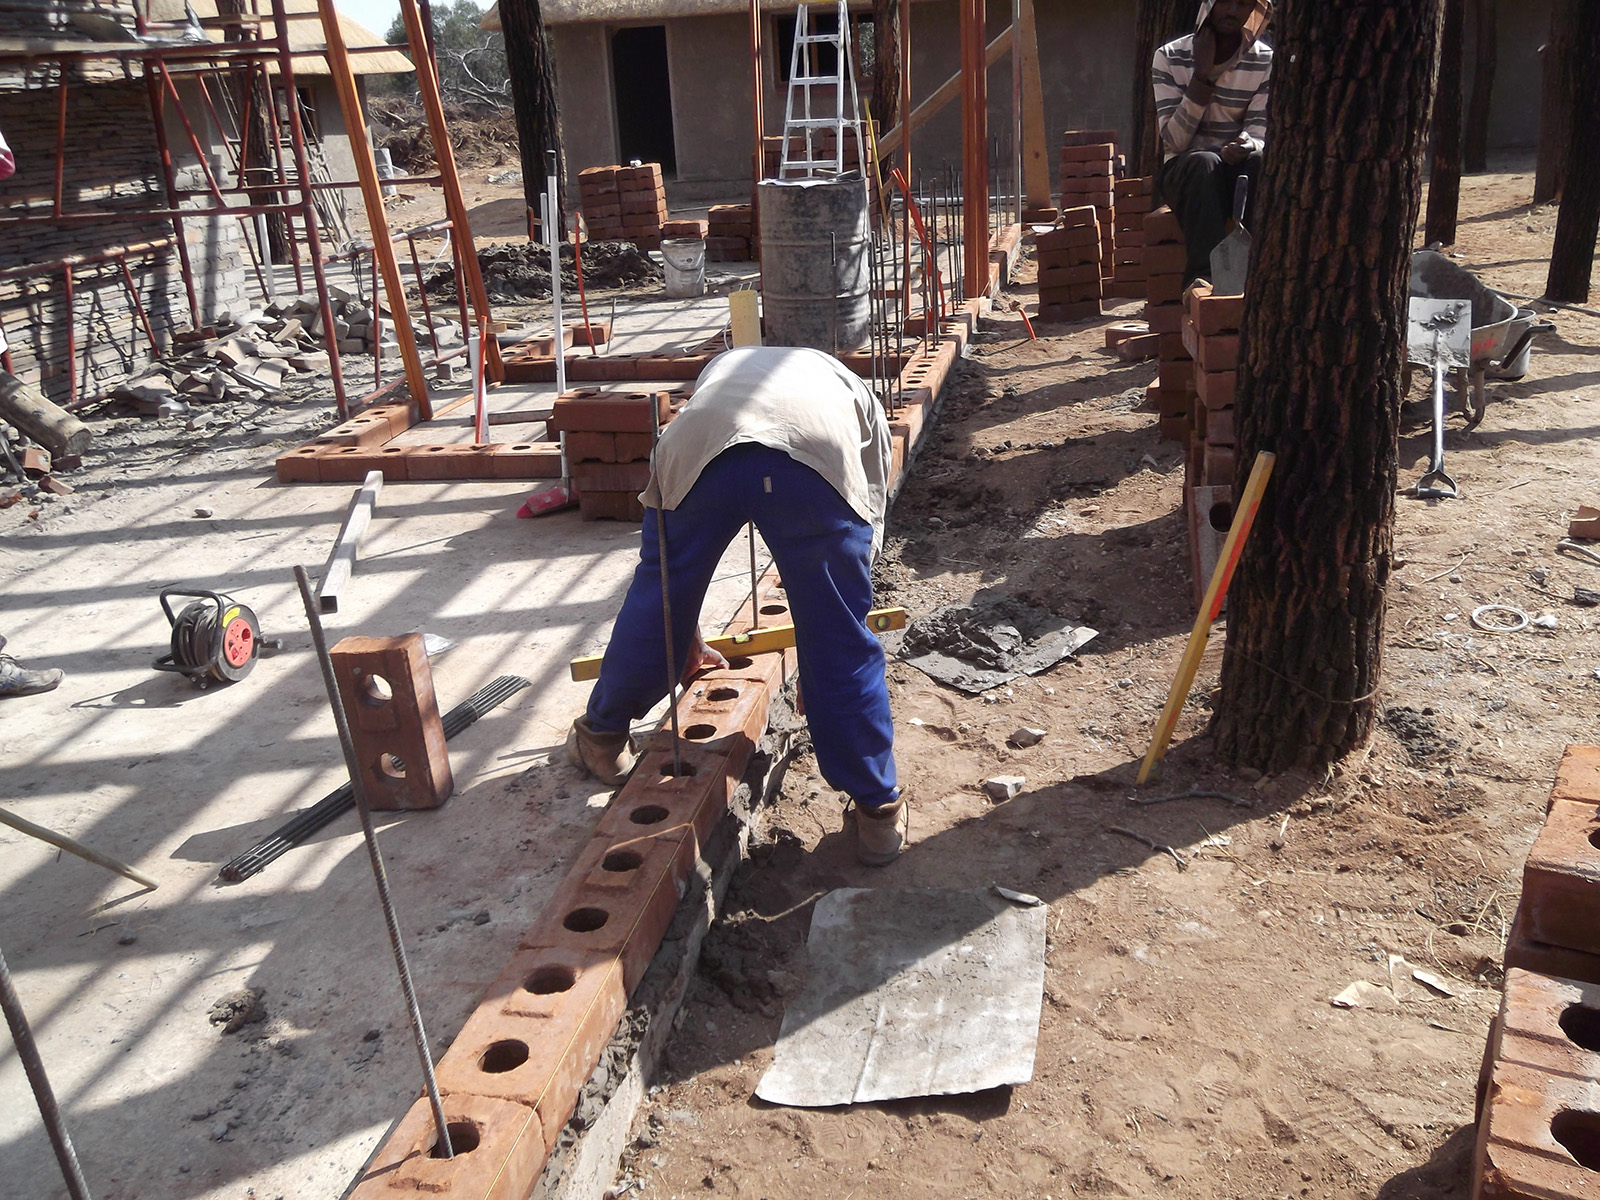 Compressed Earth Block Building Guide How To Build With Ceb Electrical Wiring In Cinder Walls Finished Wall